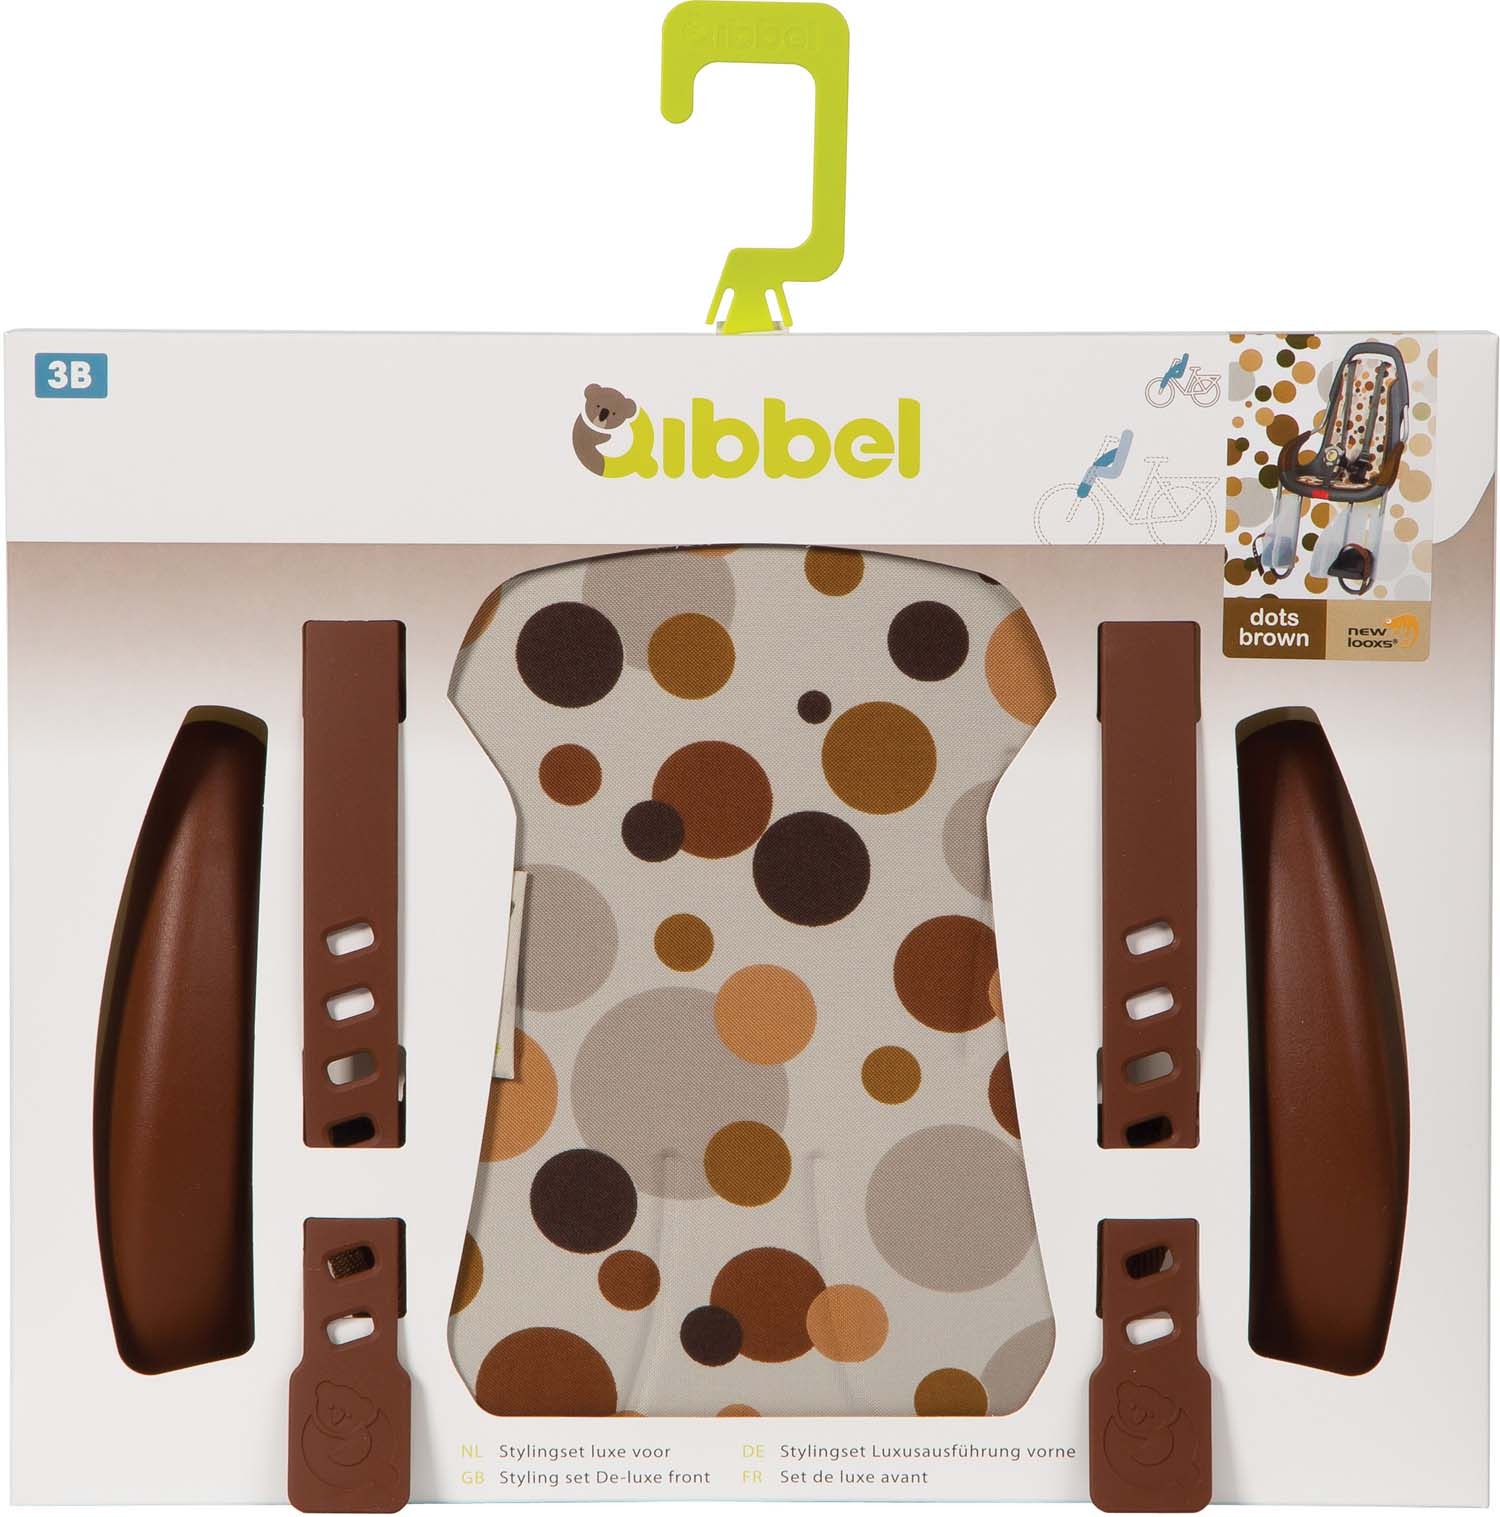 Qibbel Stylingset Luxe Dots Bruin t.b.v. Voorzitje